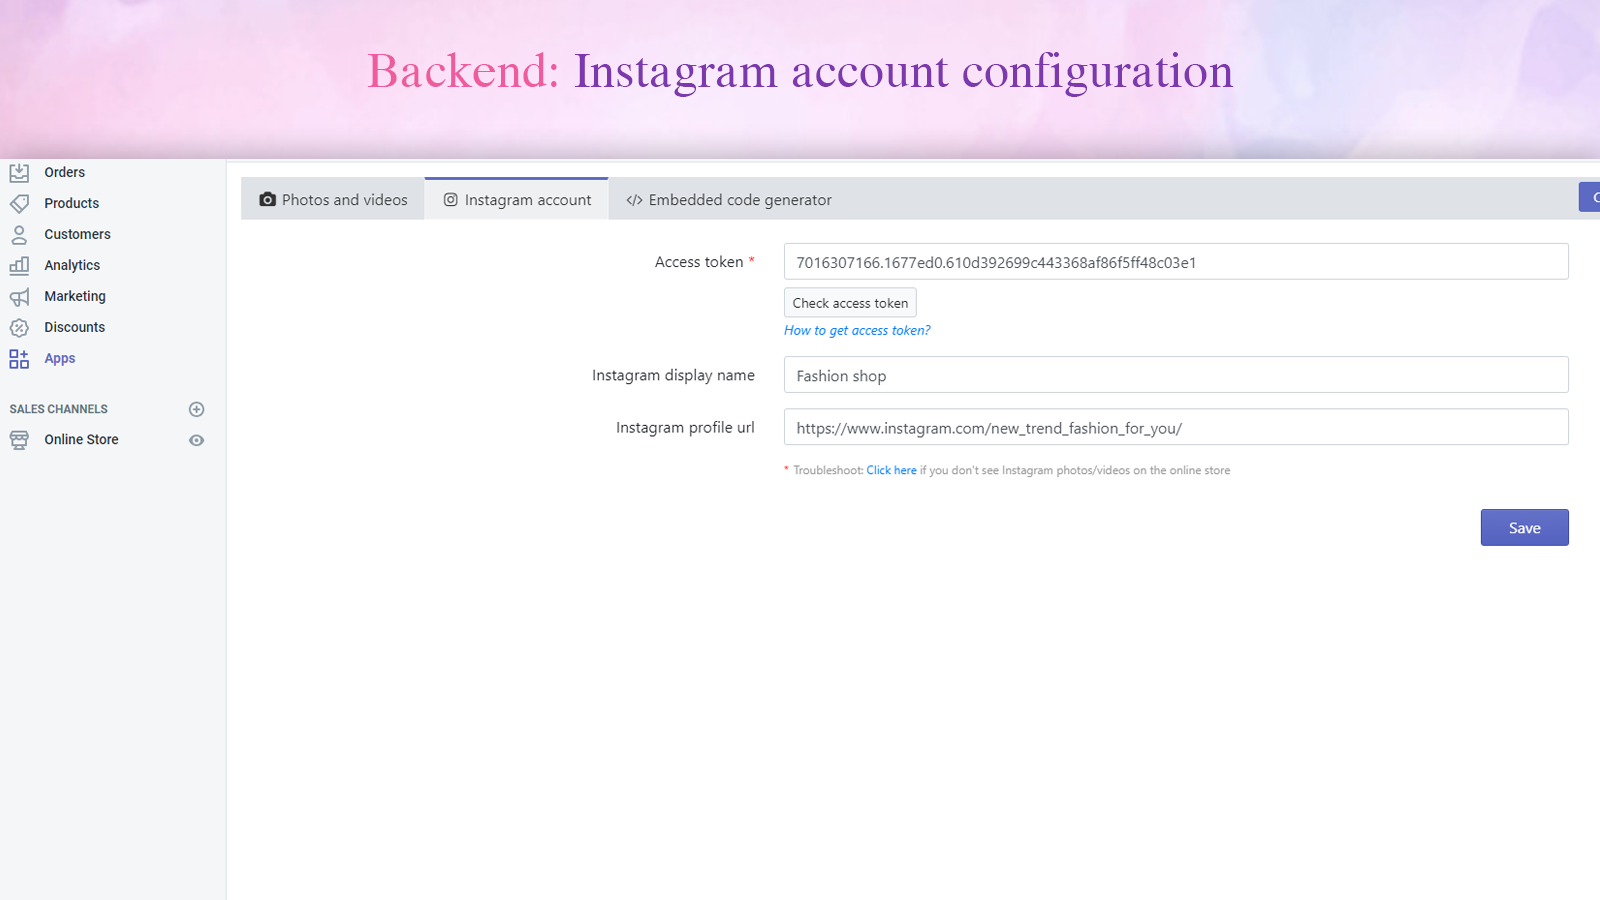 Backend: Instagram account configuration